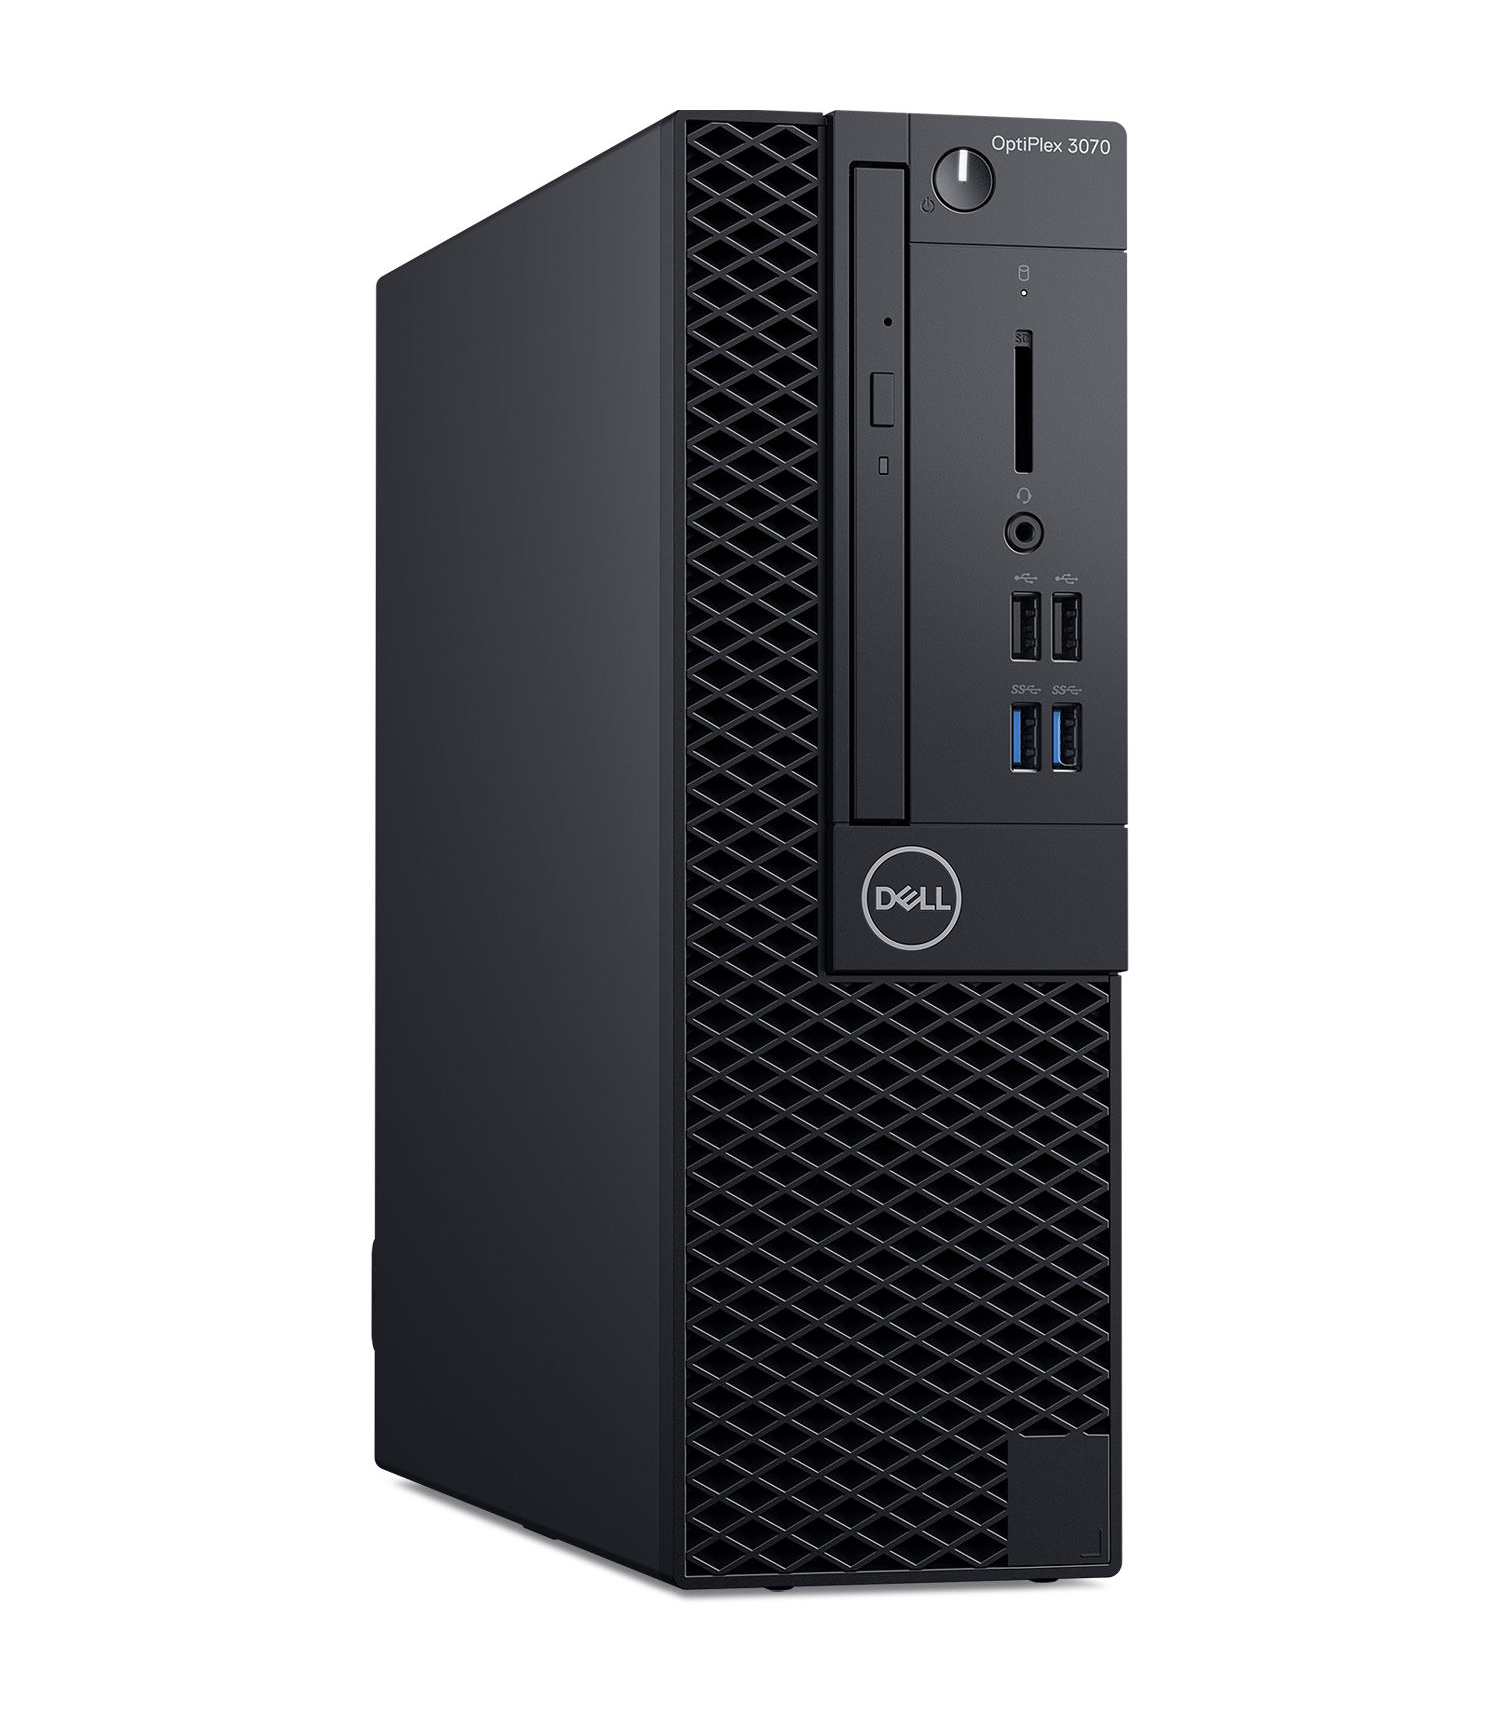 Dell OptiPlex 3070 Minitower I5 8GB